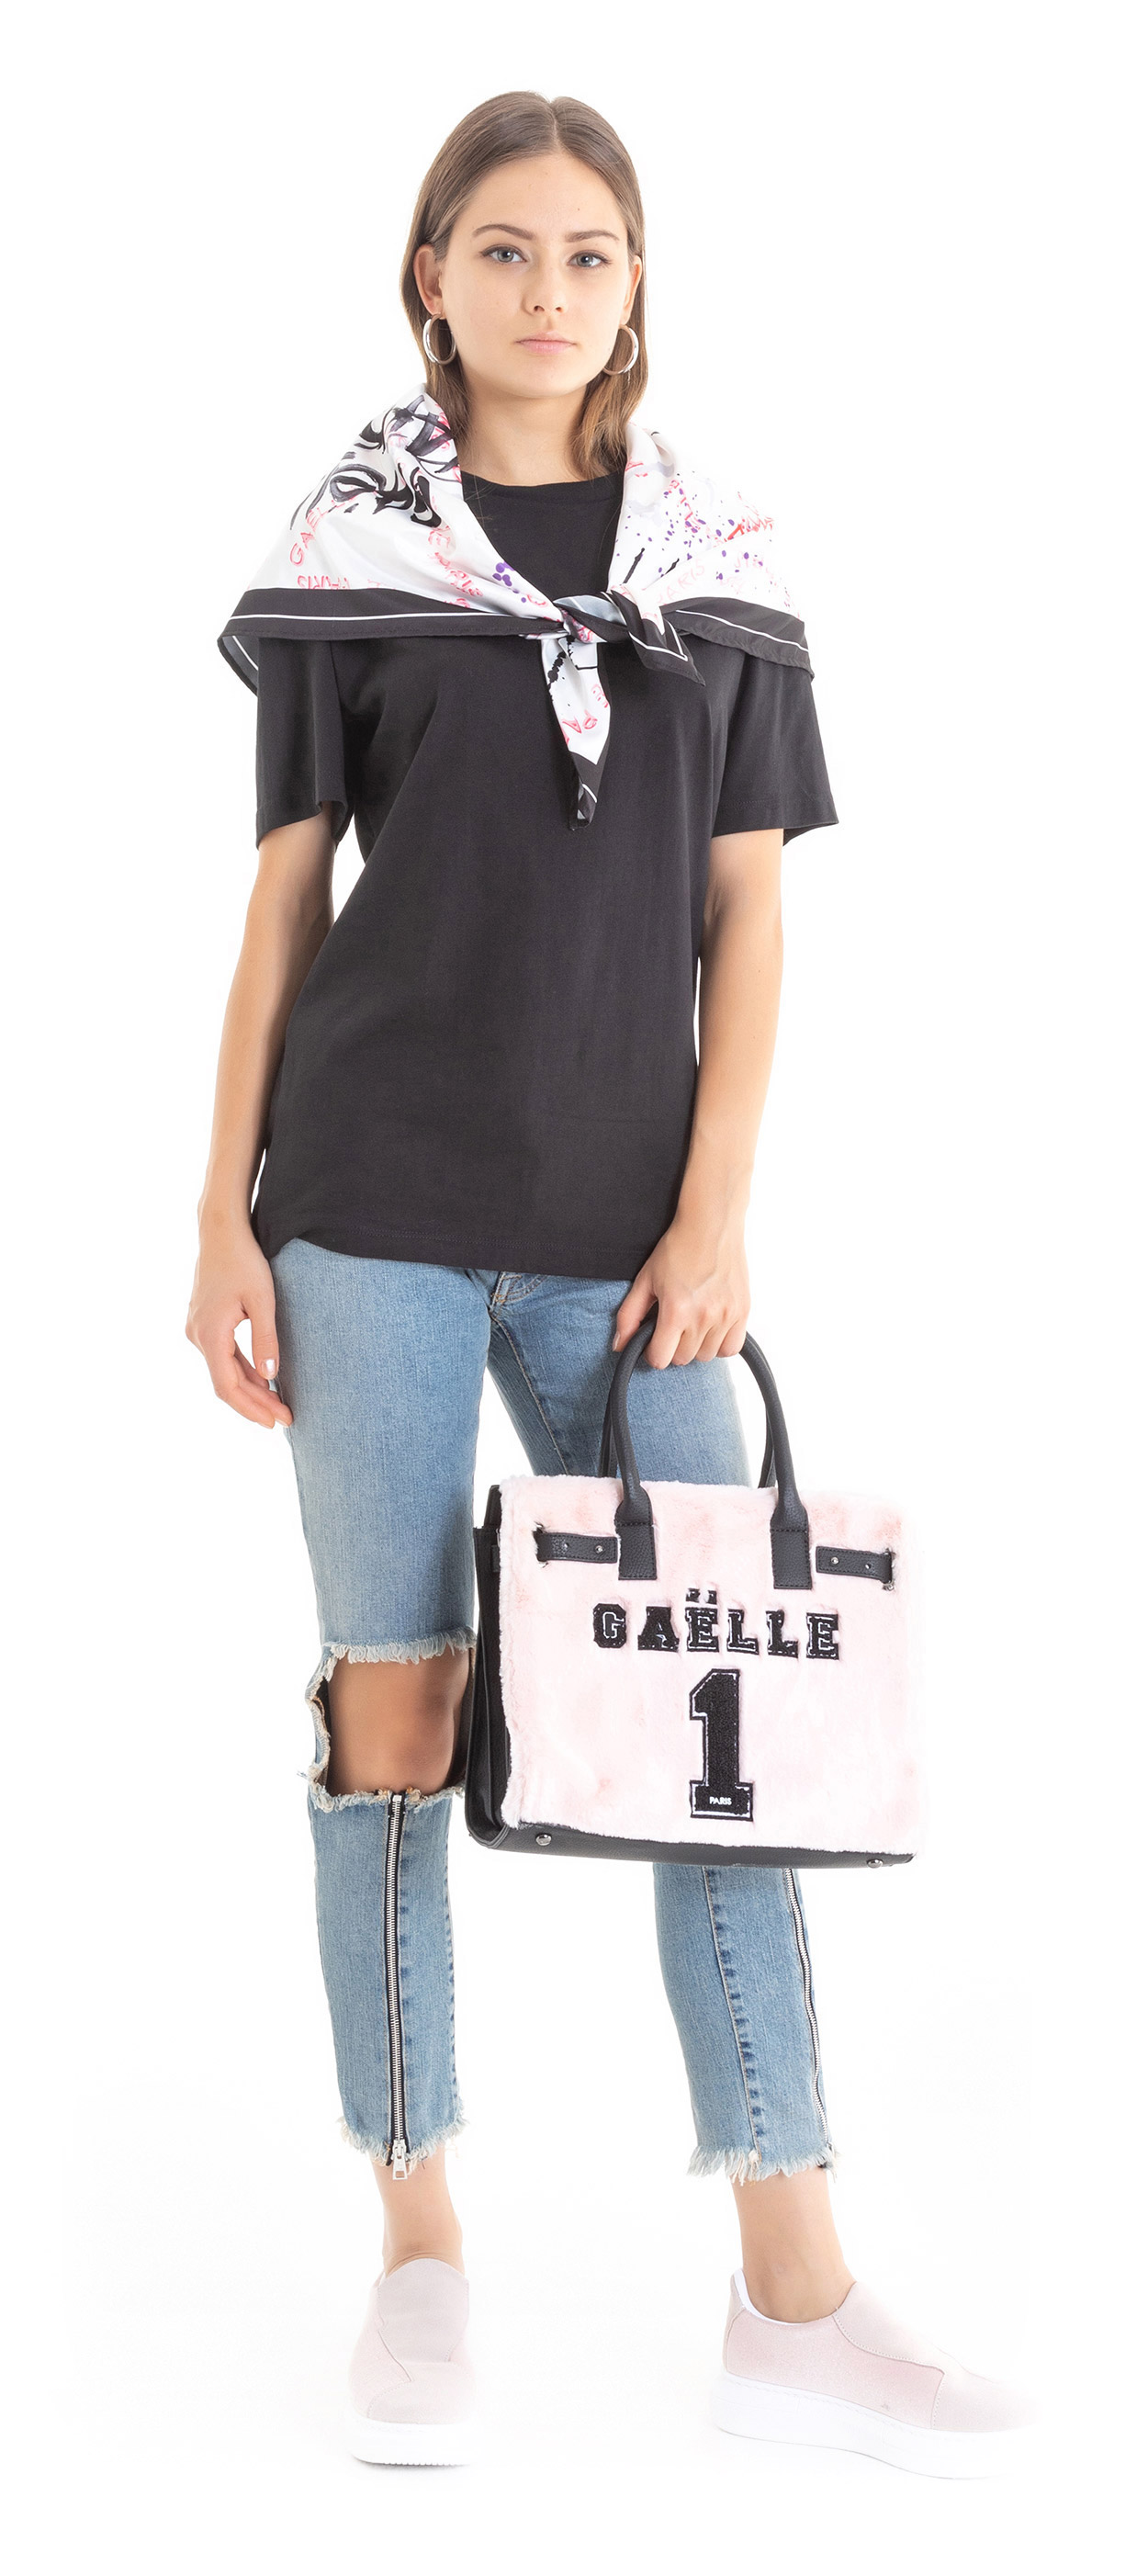 T-SHIRT - GBD2843 - GAELLE PARIS